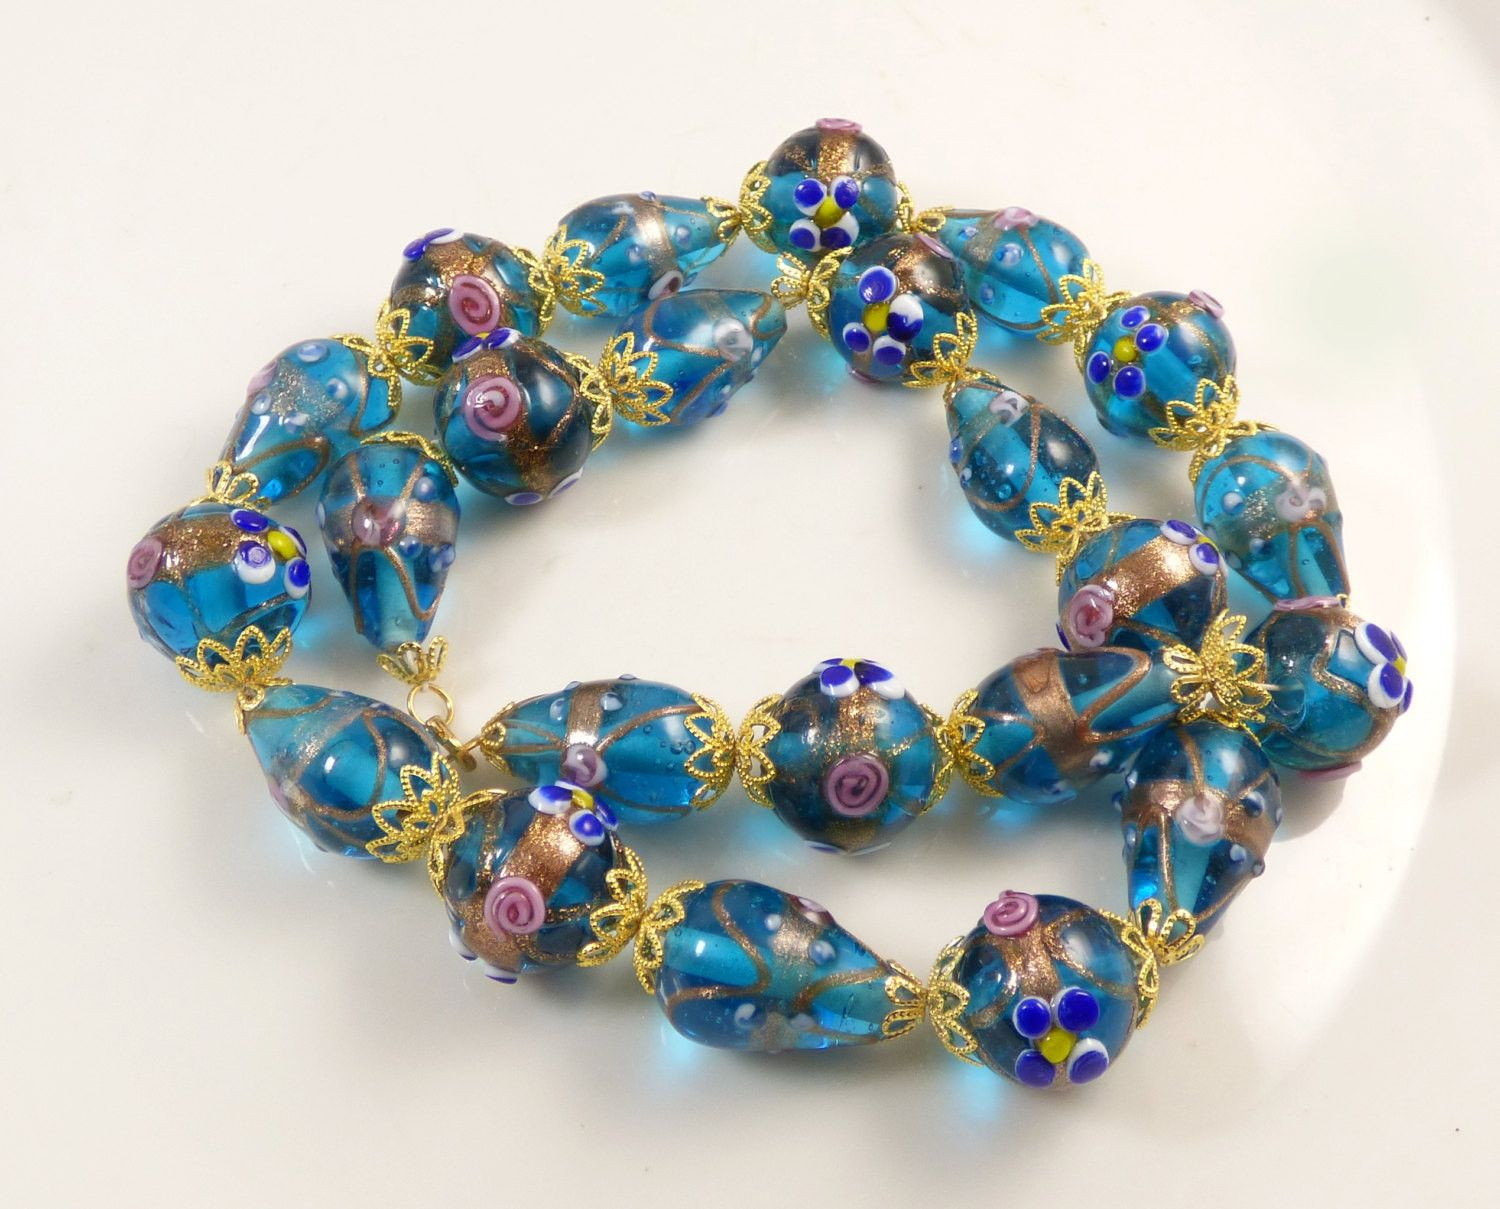 wedding cake bead necklace venetian murano glass blue translucent beads